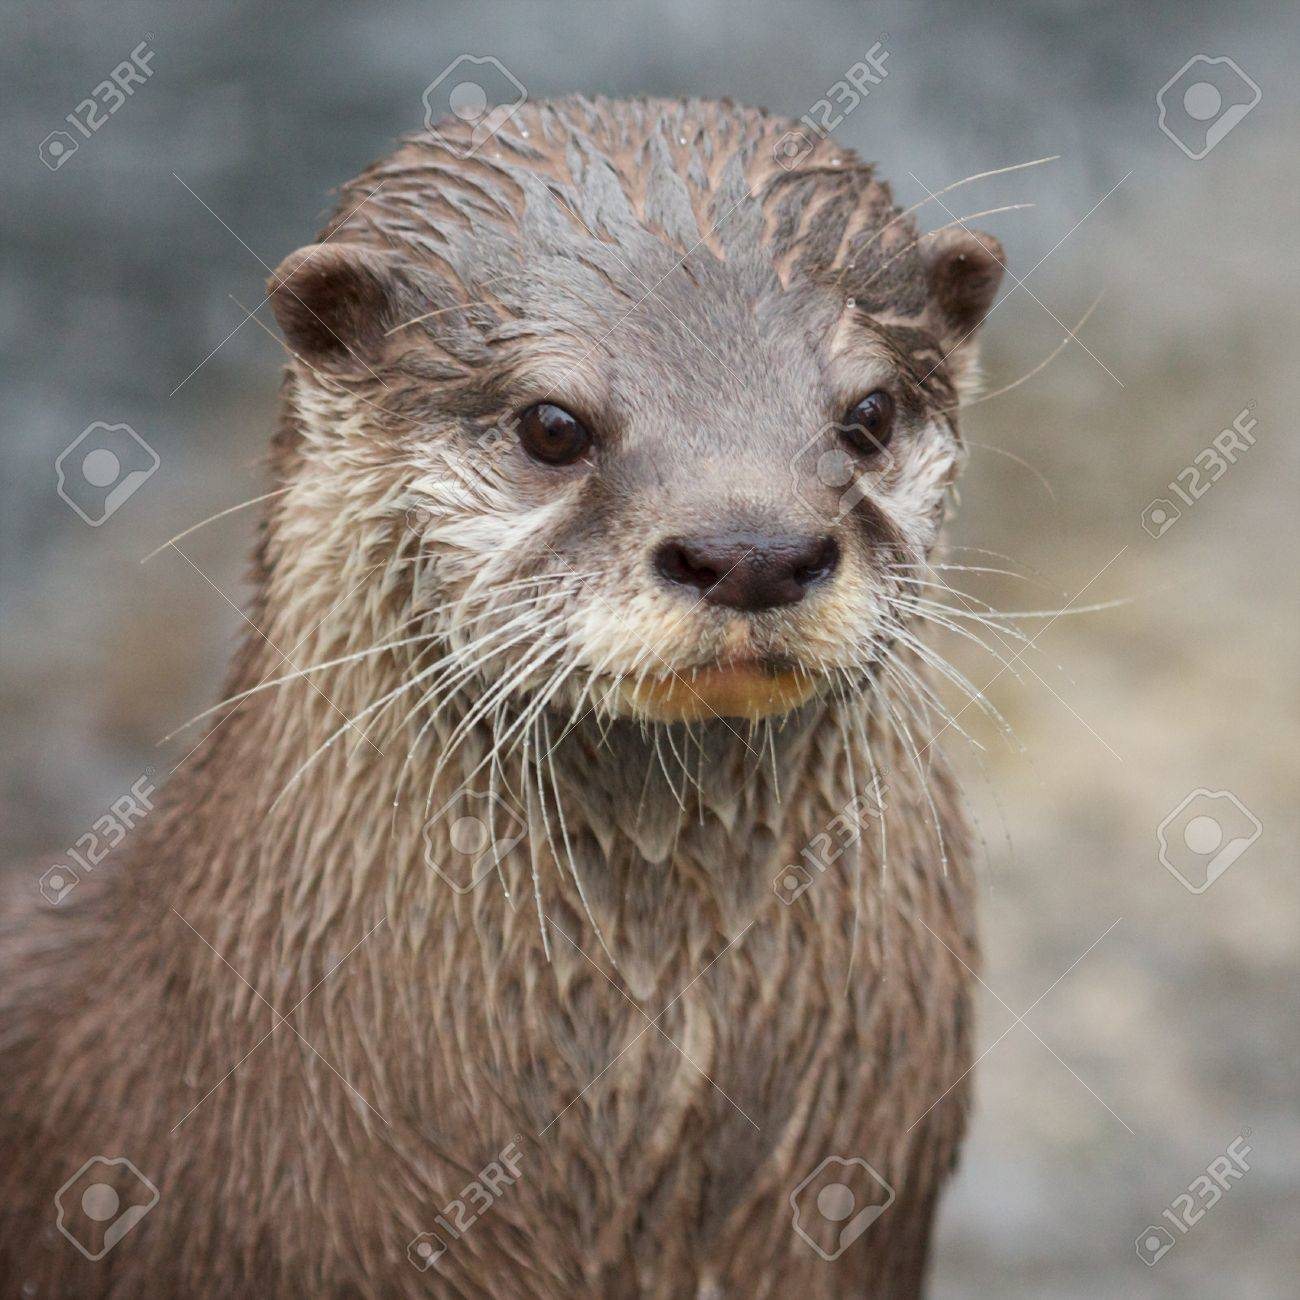 Portrait of a small-clawed otter standing upright - 17922096